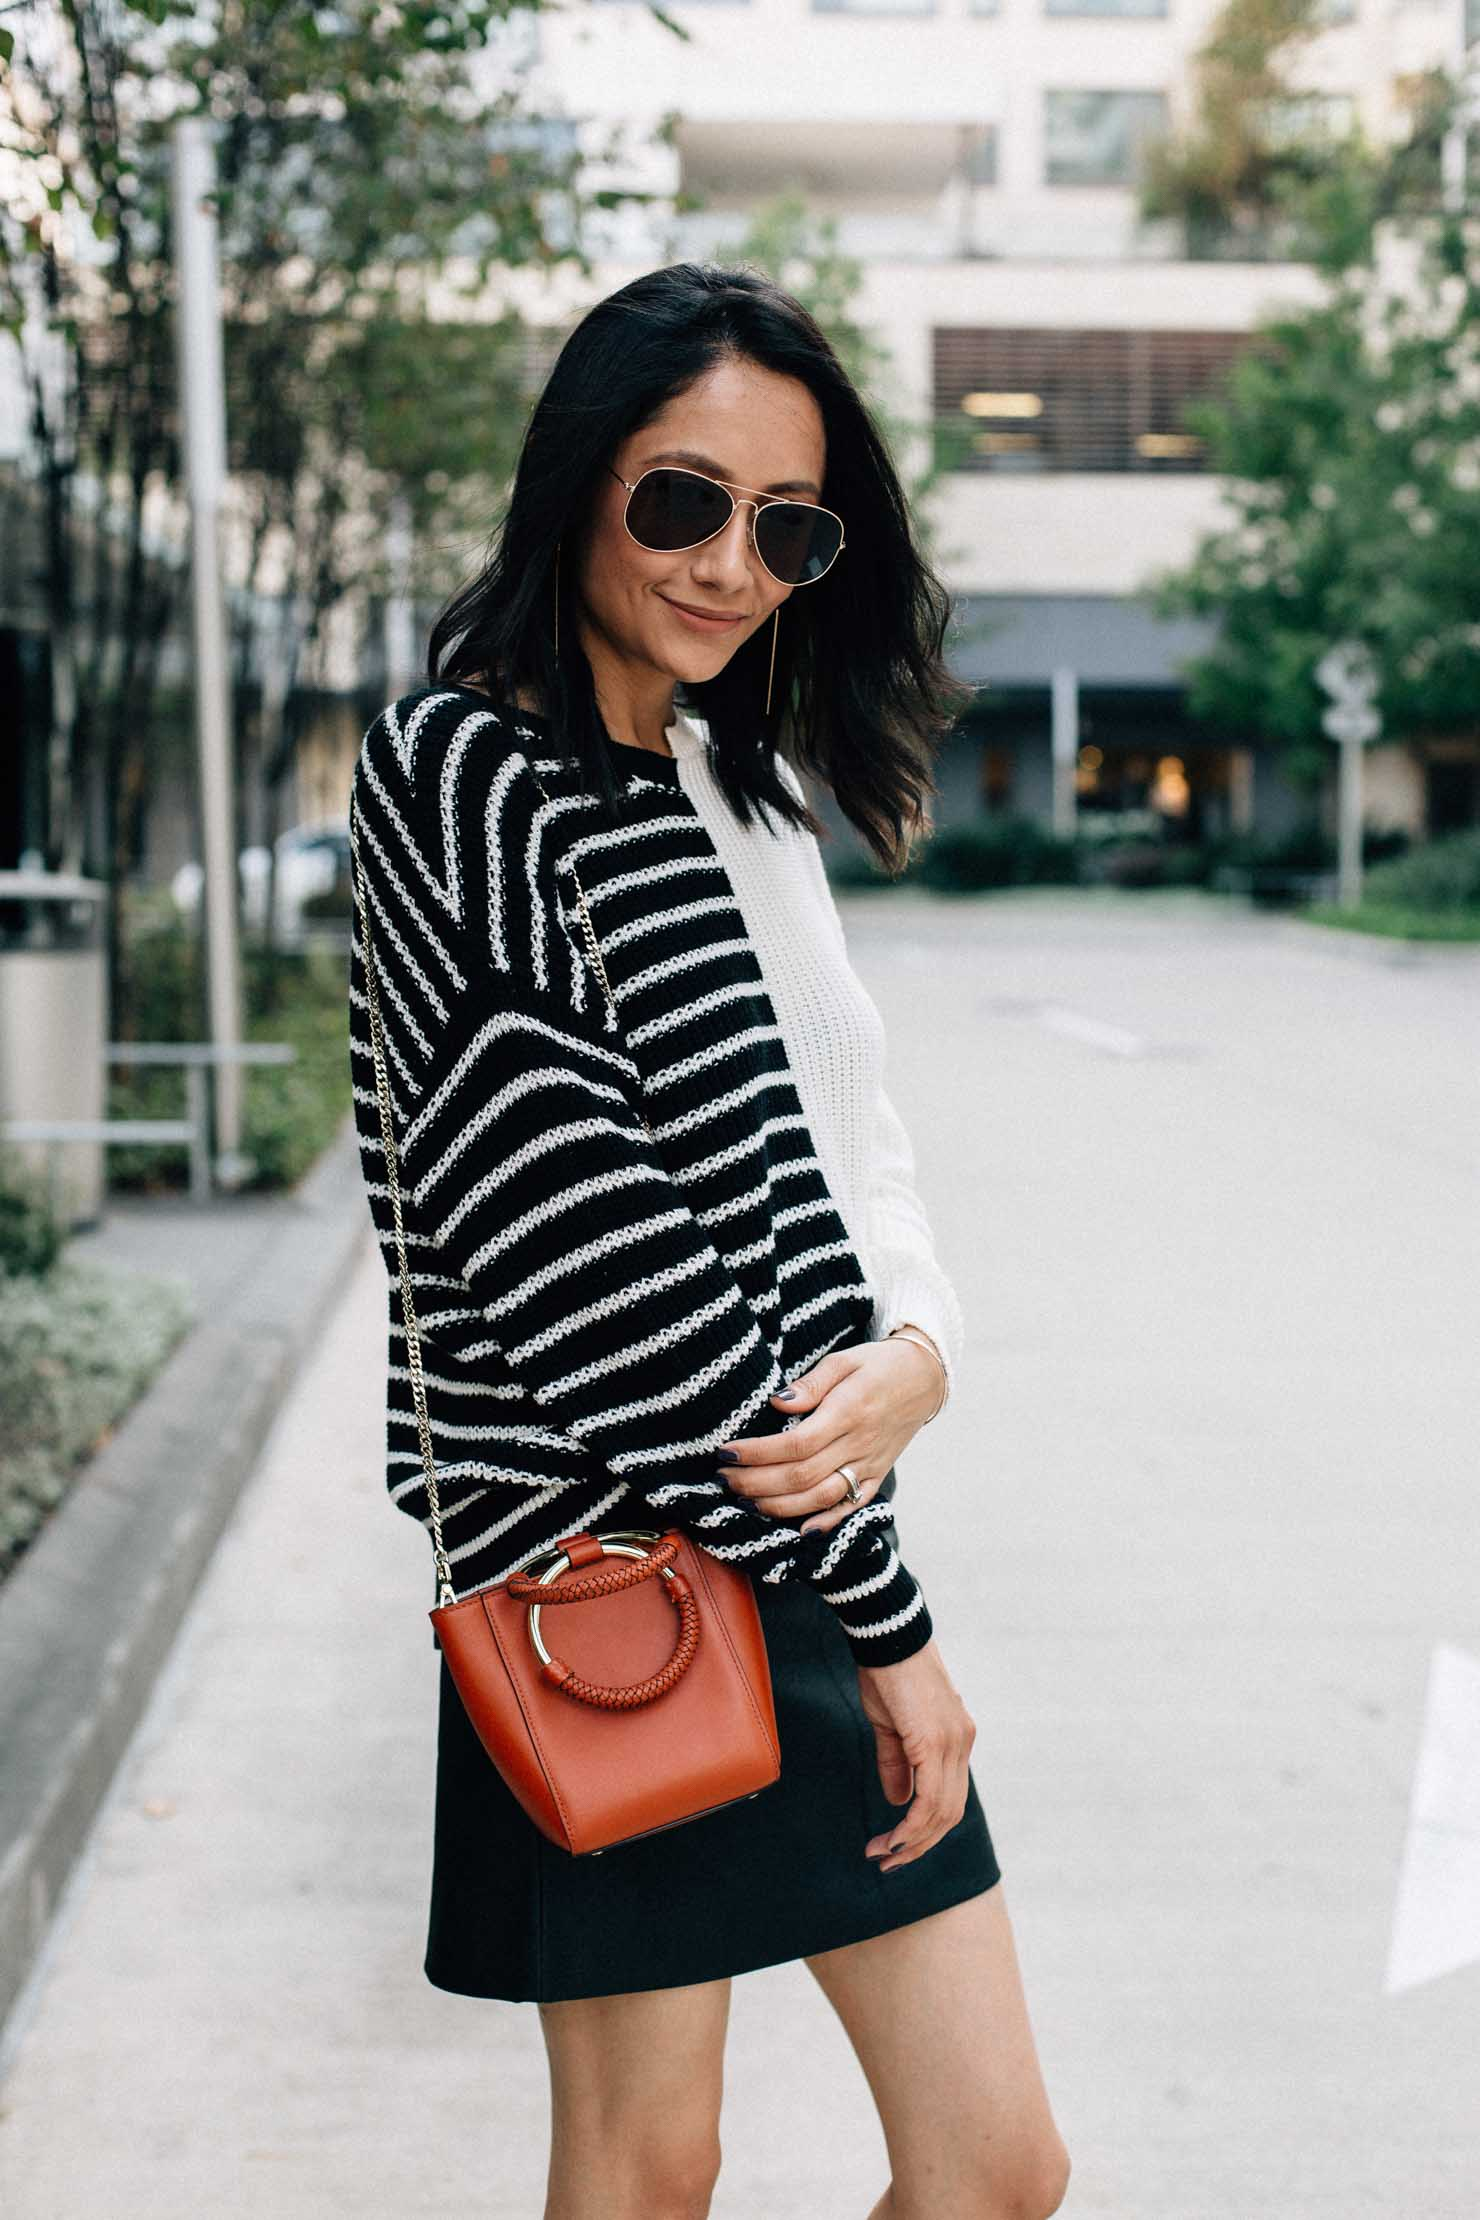 Style blogger Lilly Beltran in a fall outfit with a faux leather mini skirt and oversized striped sweater